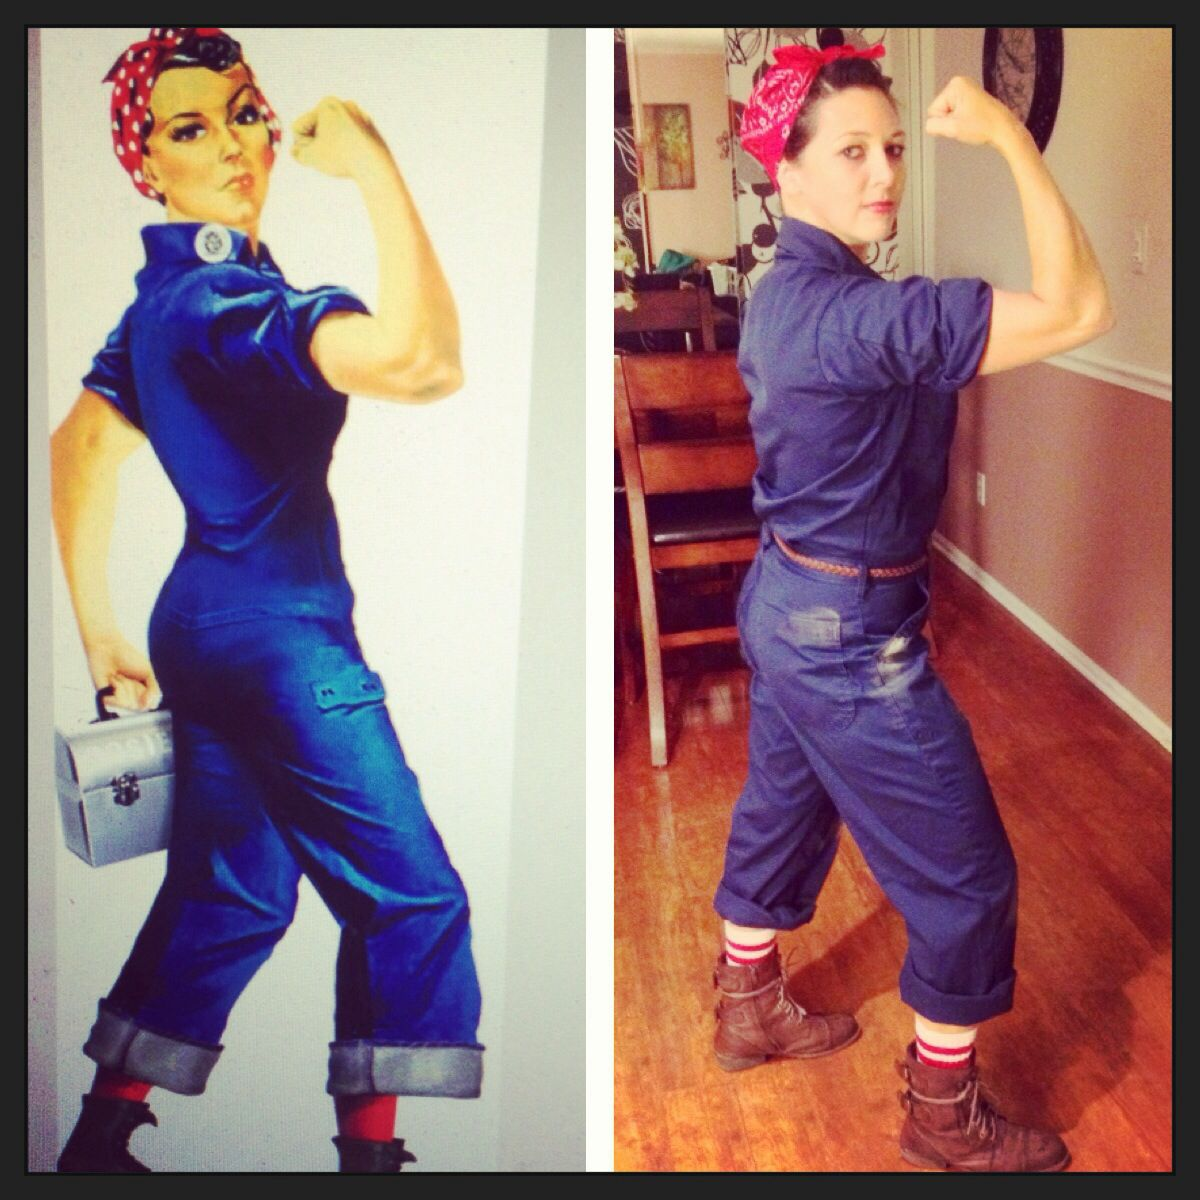 homemade rosie the riveter halloween costume - Rosie The Riveter Halloween Costume